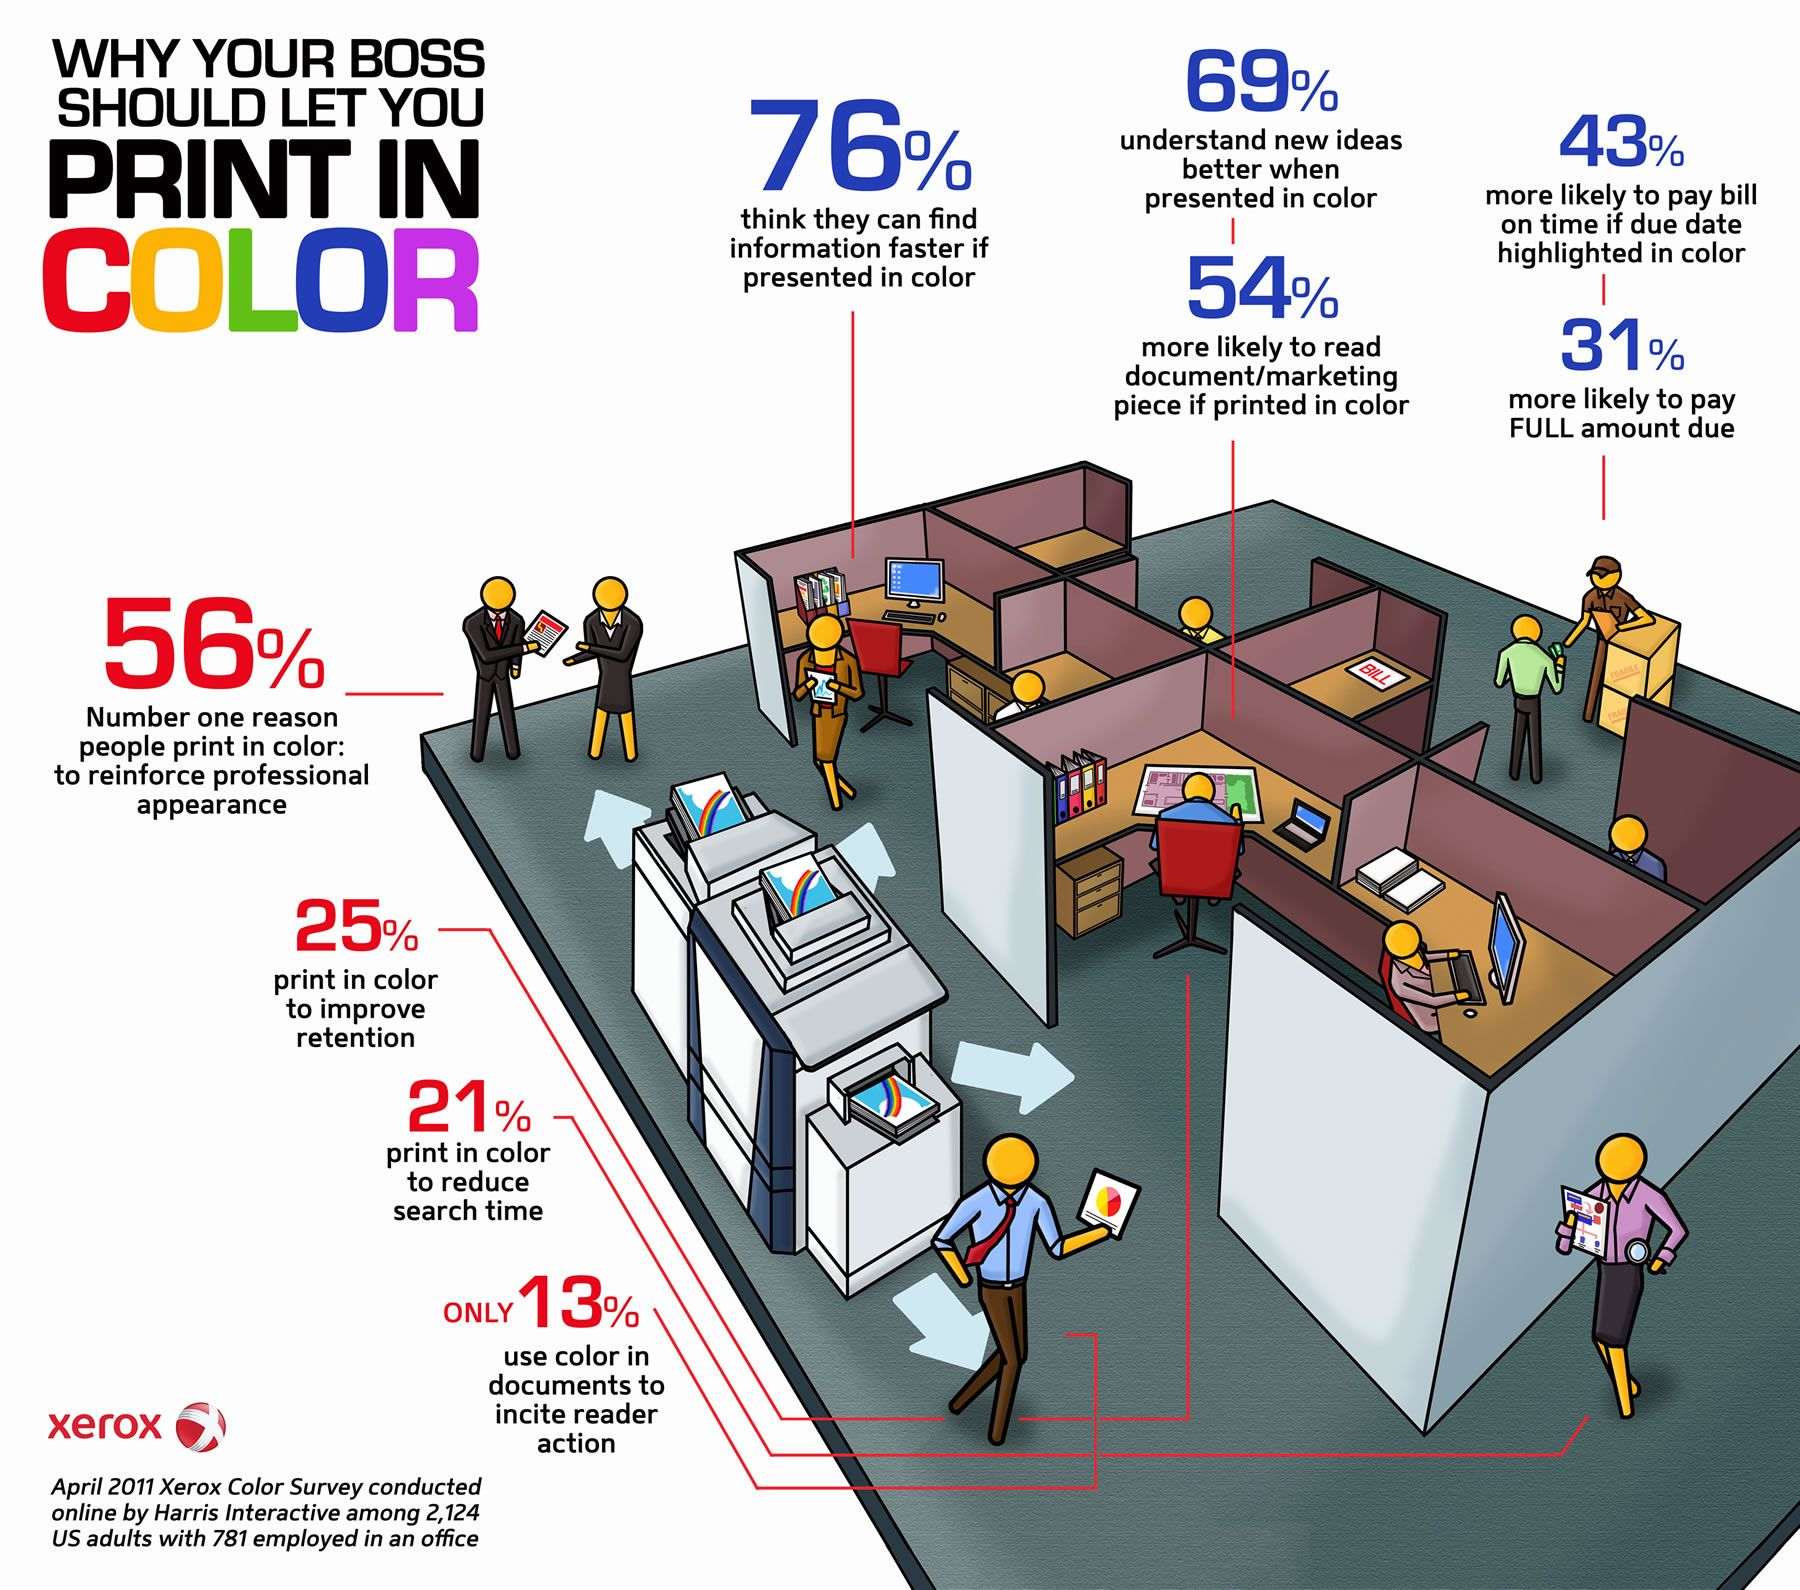 This Infographic Is Based On The Results Of A Survey Conducted By